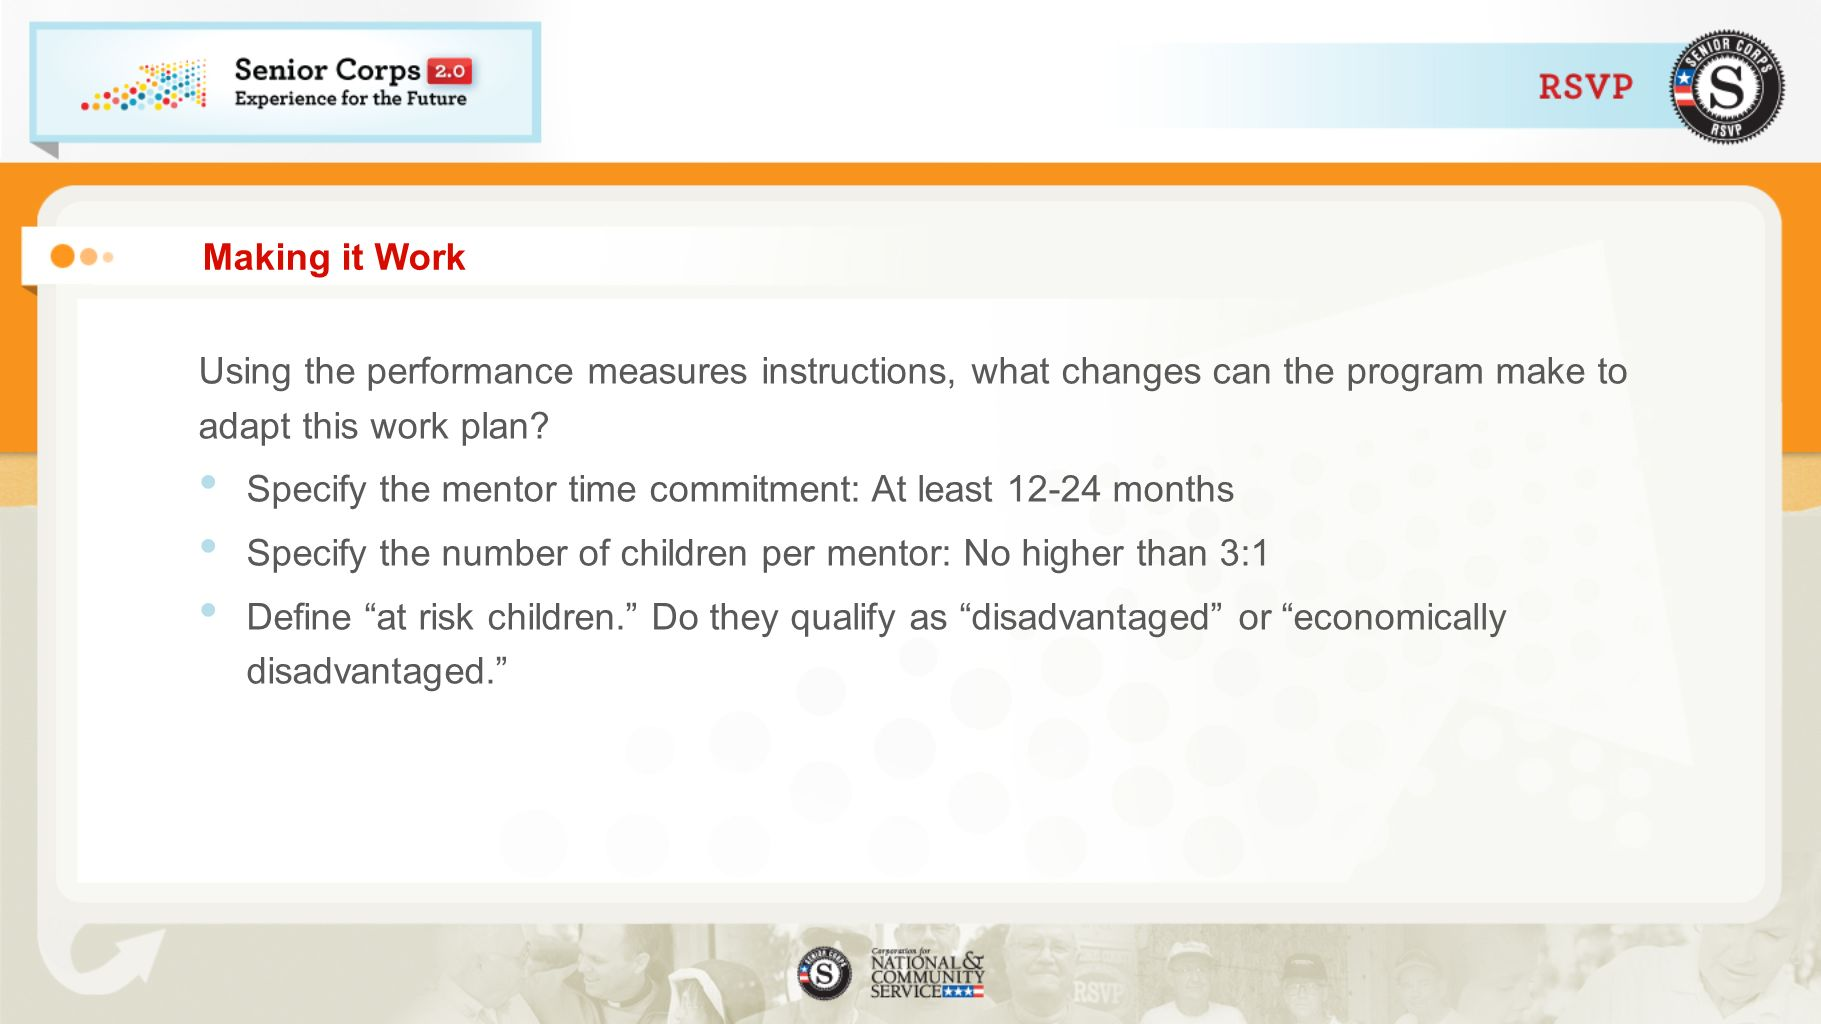 Specify the mentor time commitment: At least 12-24 months